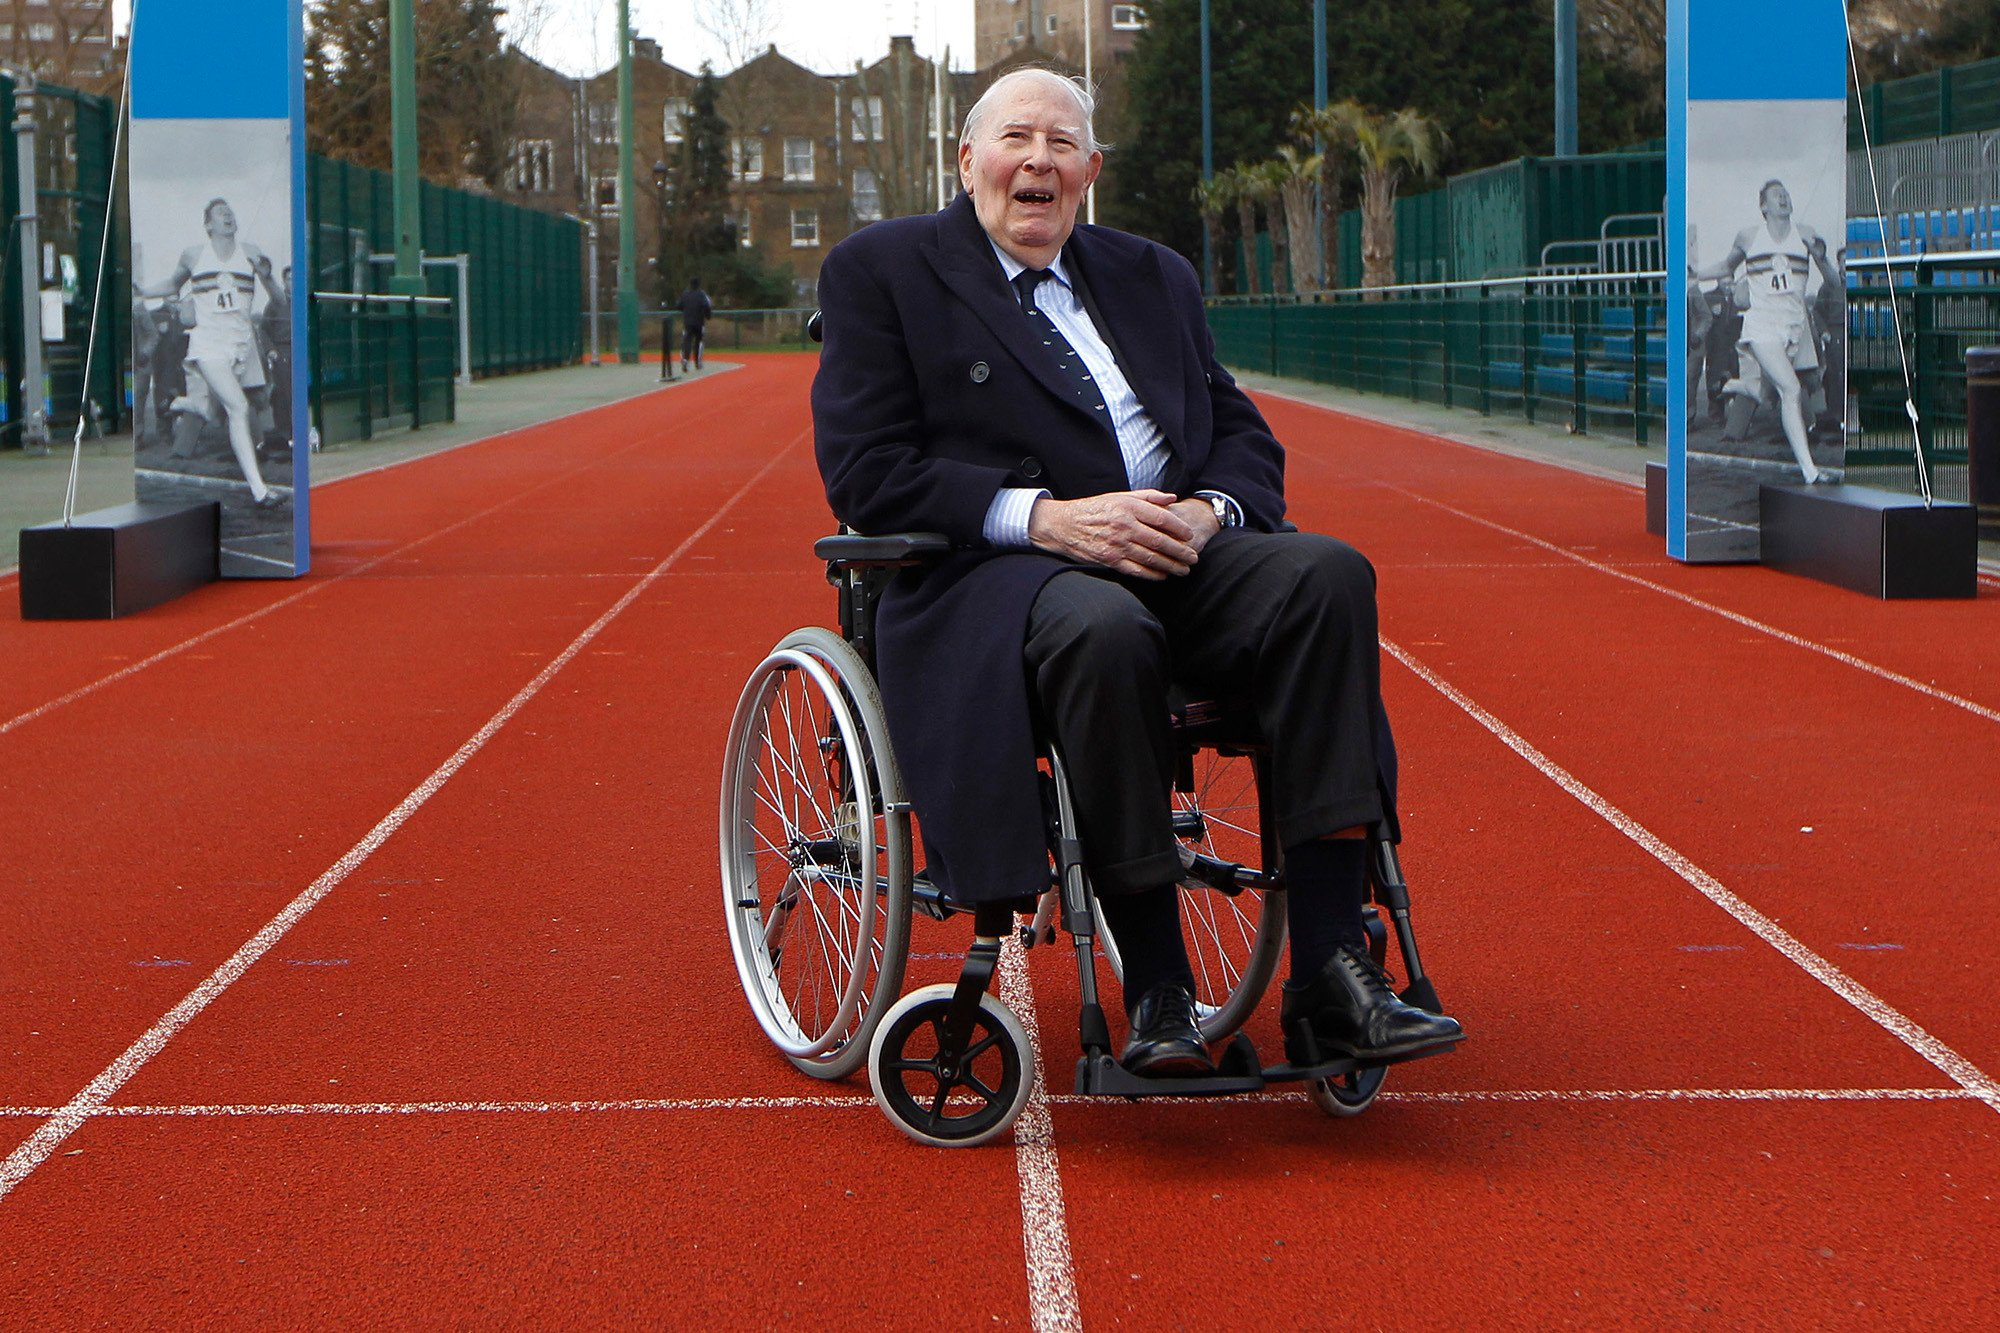 Roger Bannister, first to run mile in under 4 minutes, dies at 88